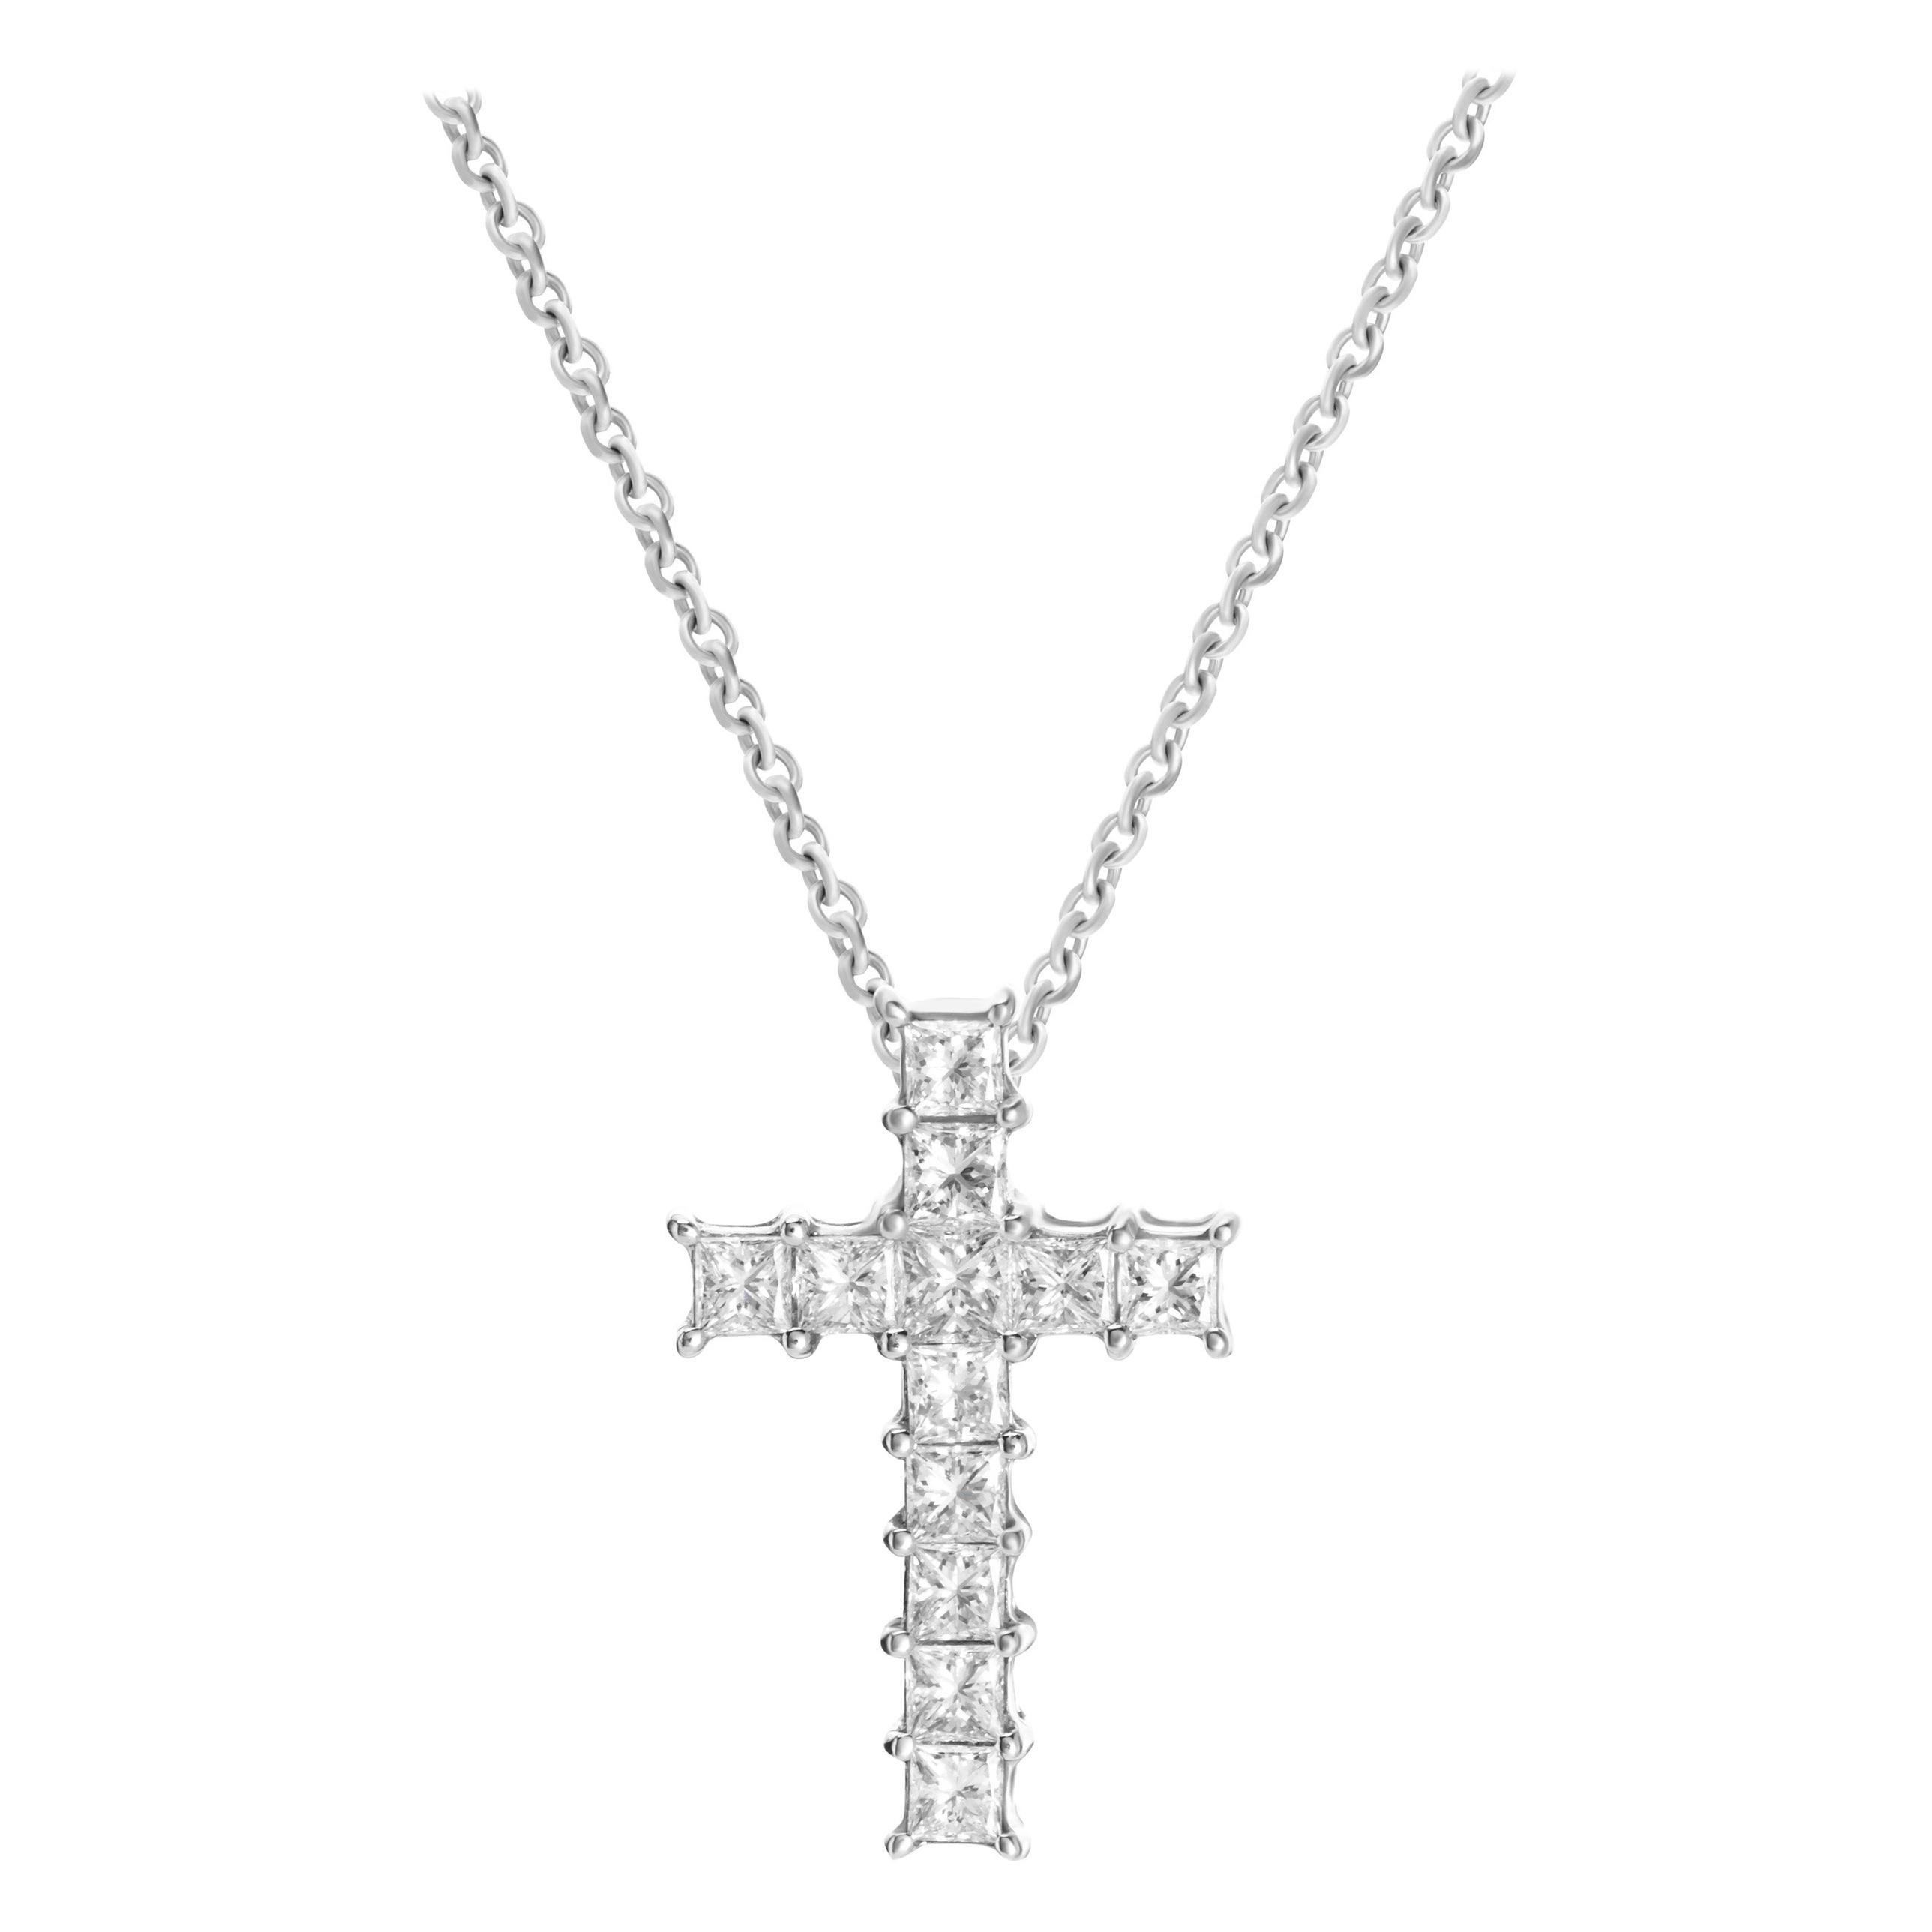 0.92 Carat Princess Cut Diamond 18 Karat White Gold Cross Pendant Necklace